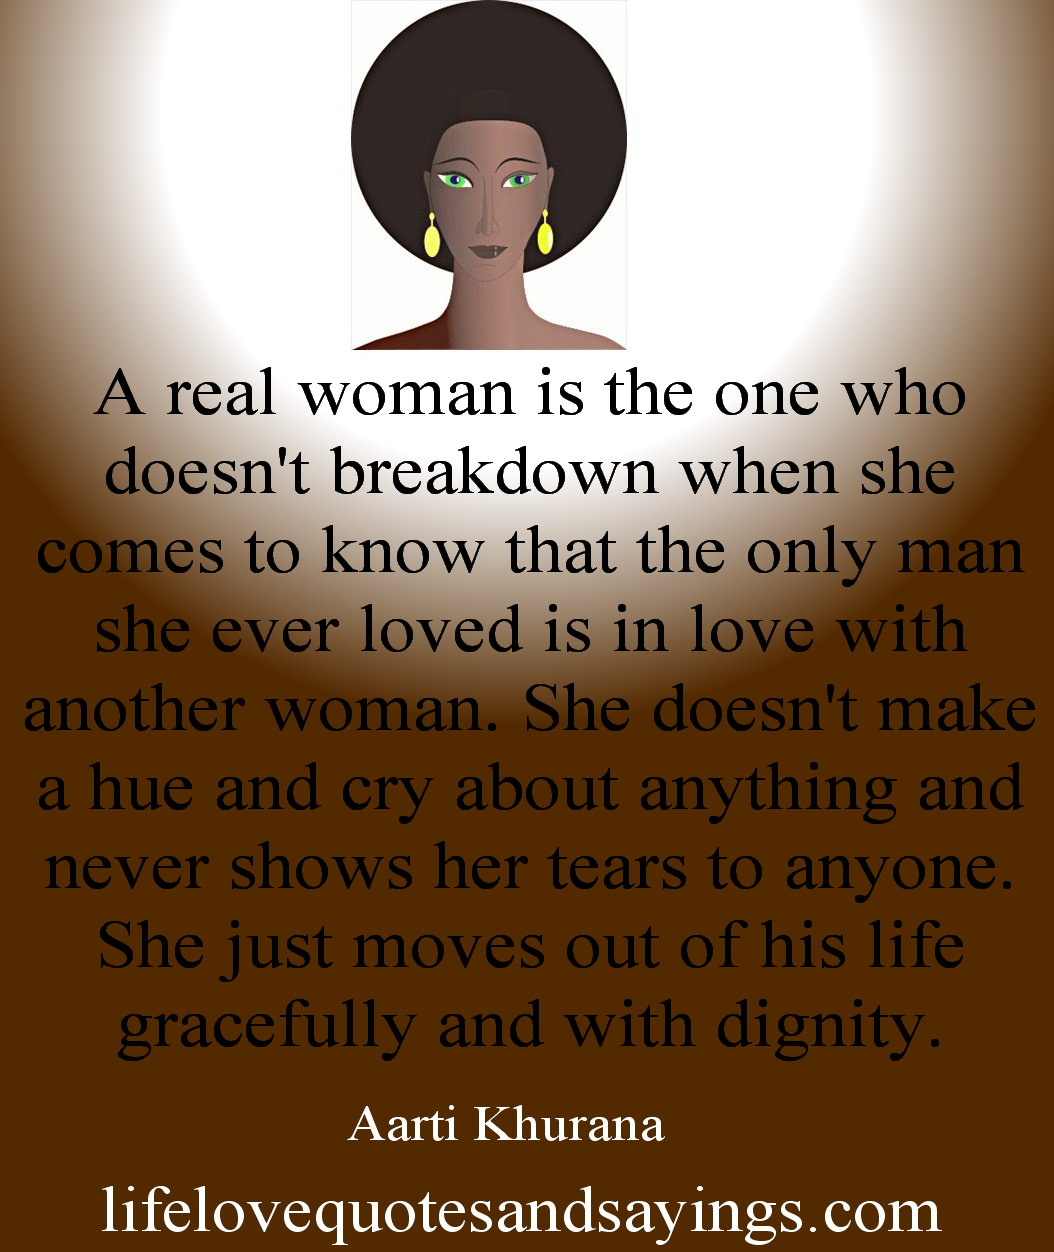 Real Women Quotes And Sayings. QuotesGram